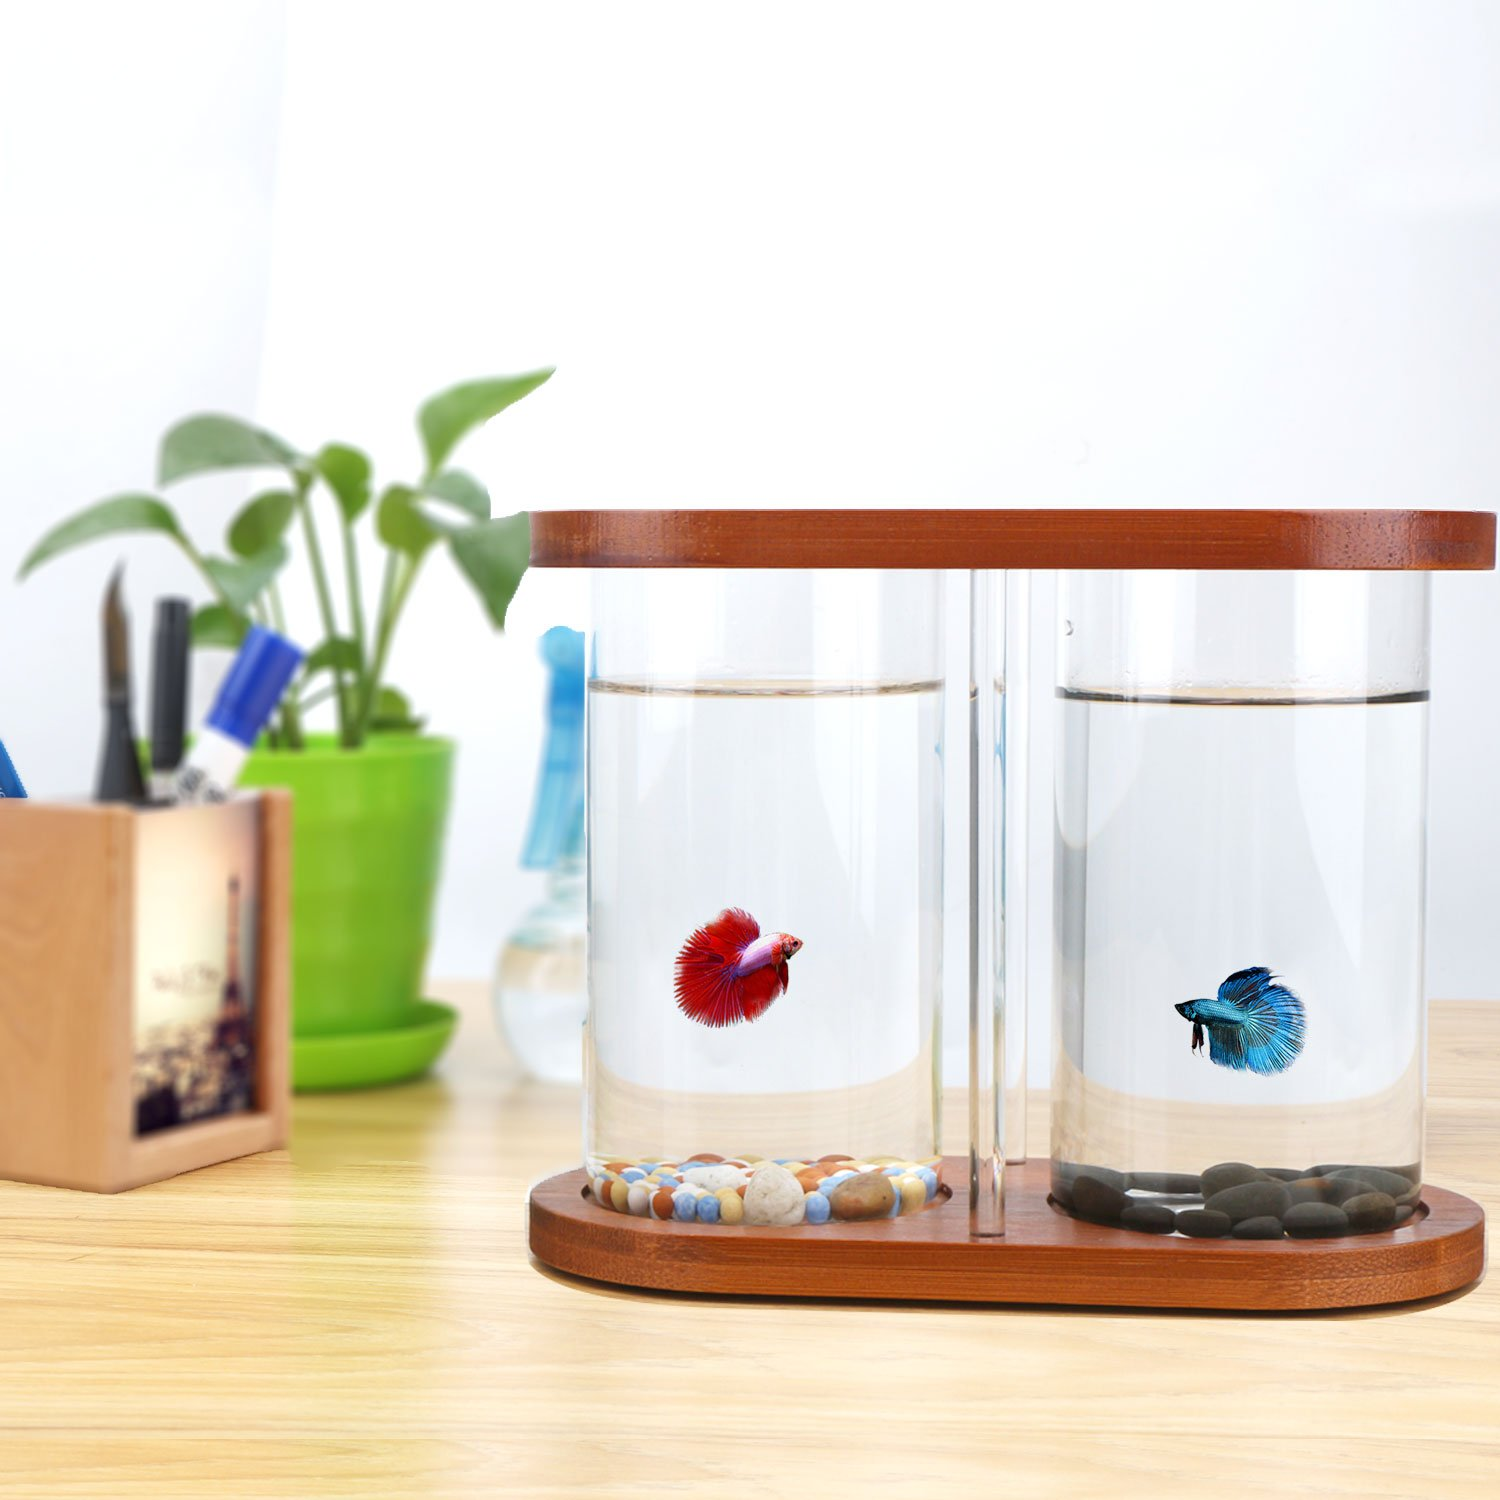 Segarty Cool Design Desktop Glass Fish Tank - Small Fish Bowls with ...